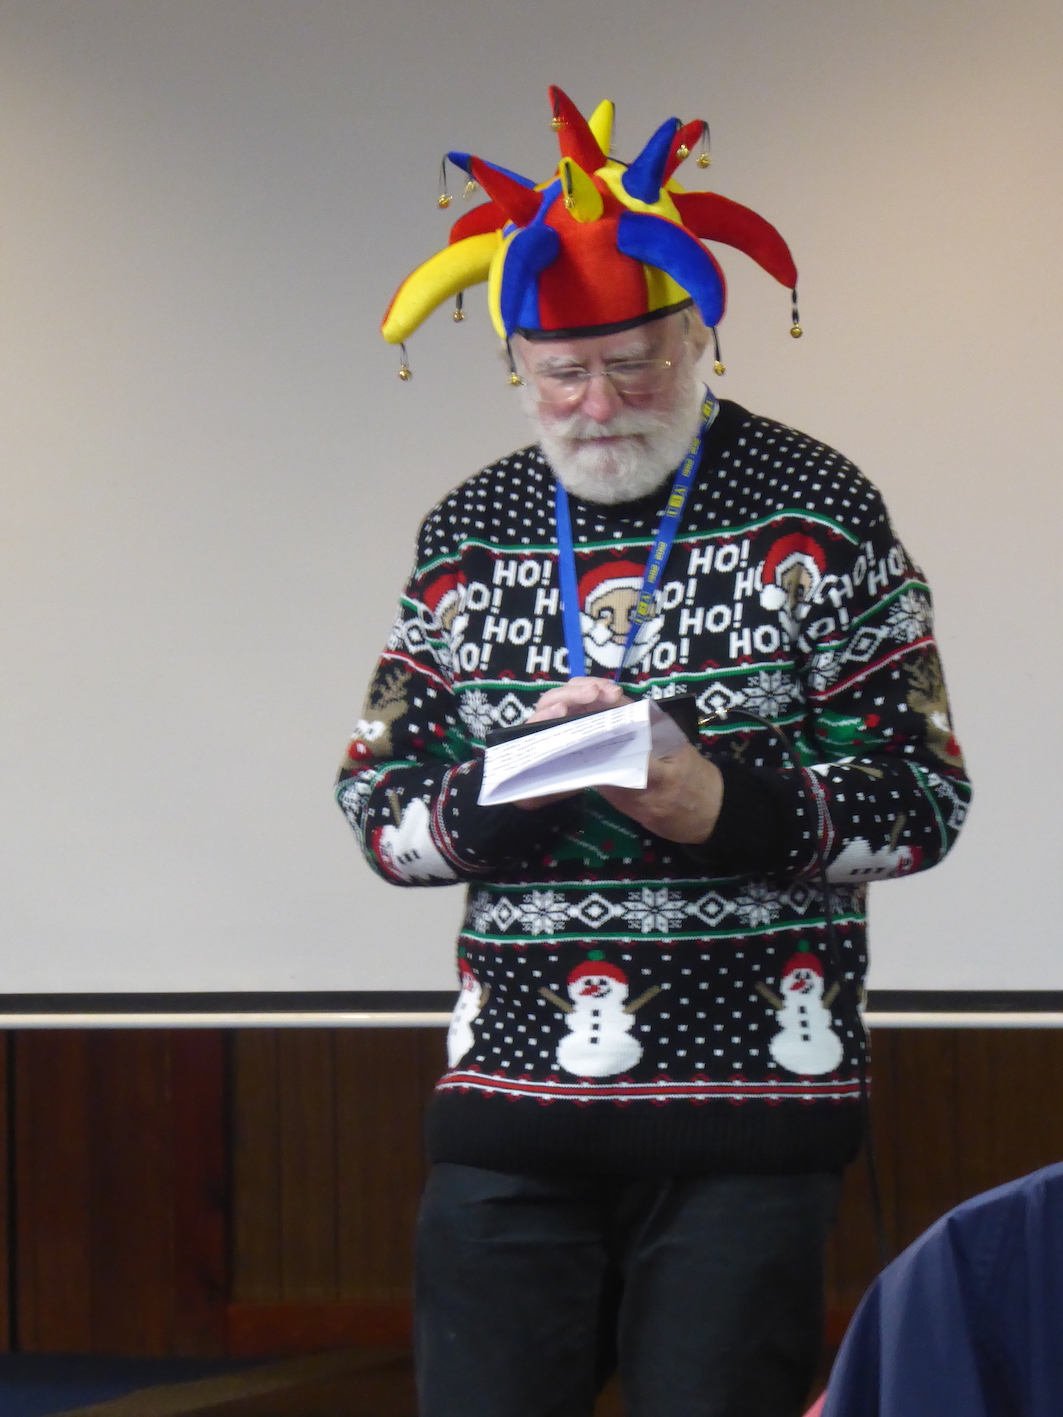 Our Chairman at Christmas